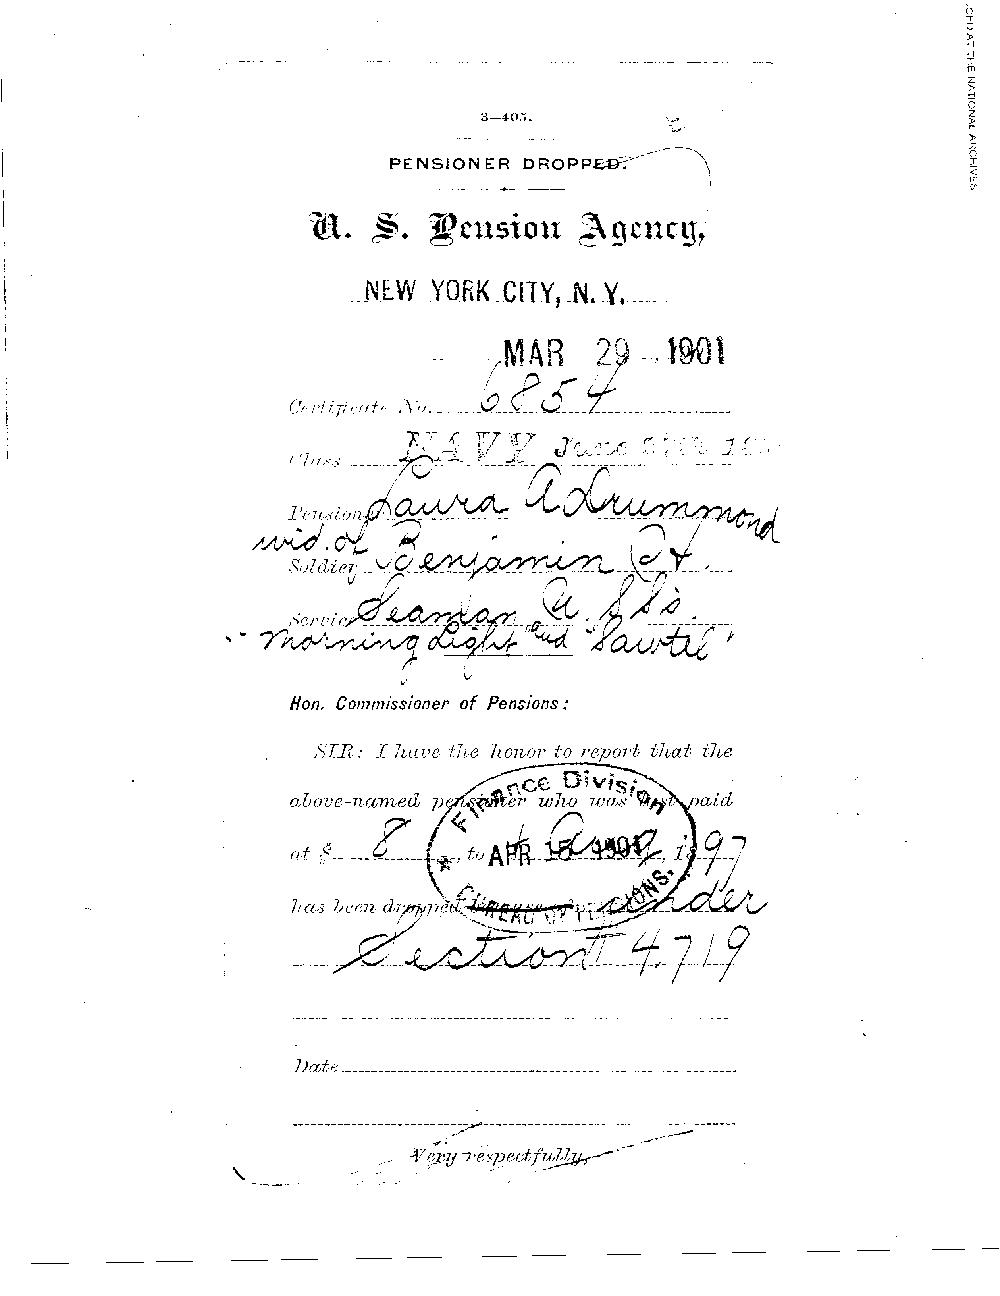 On April 15, 1901, the pension granted to Laura Drummond, widow of Benjamin Drummond  (the first patient admitted into the Naval Hospital, Washington City, when it opened on  October 1, 1866) was dropped, presumably on her death.